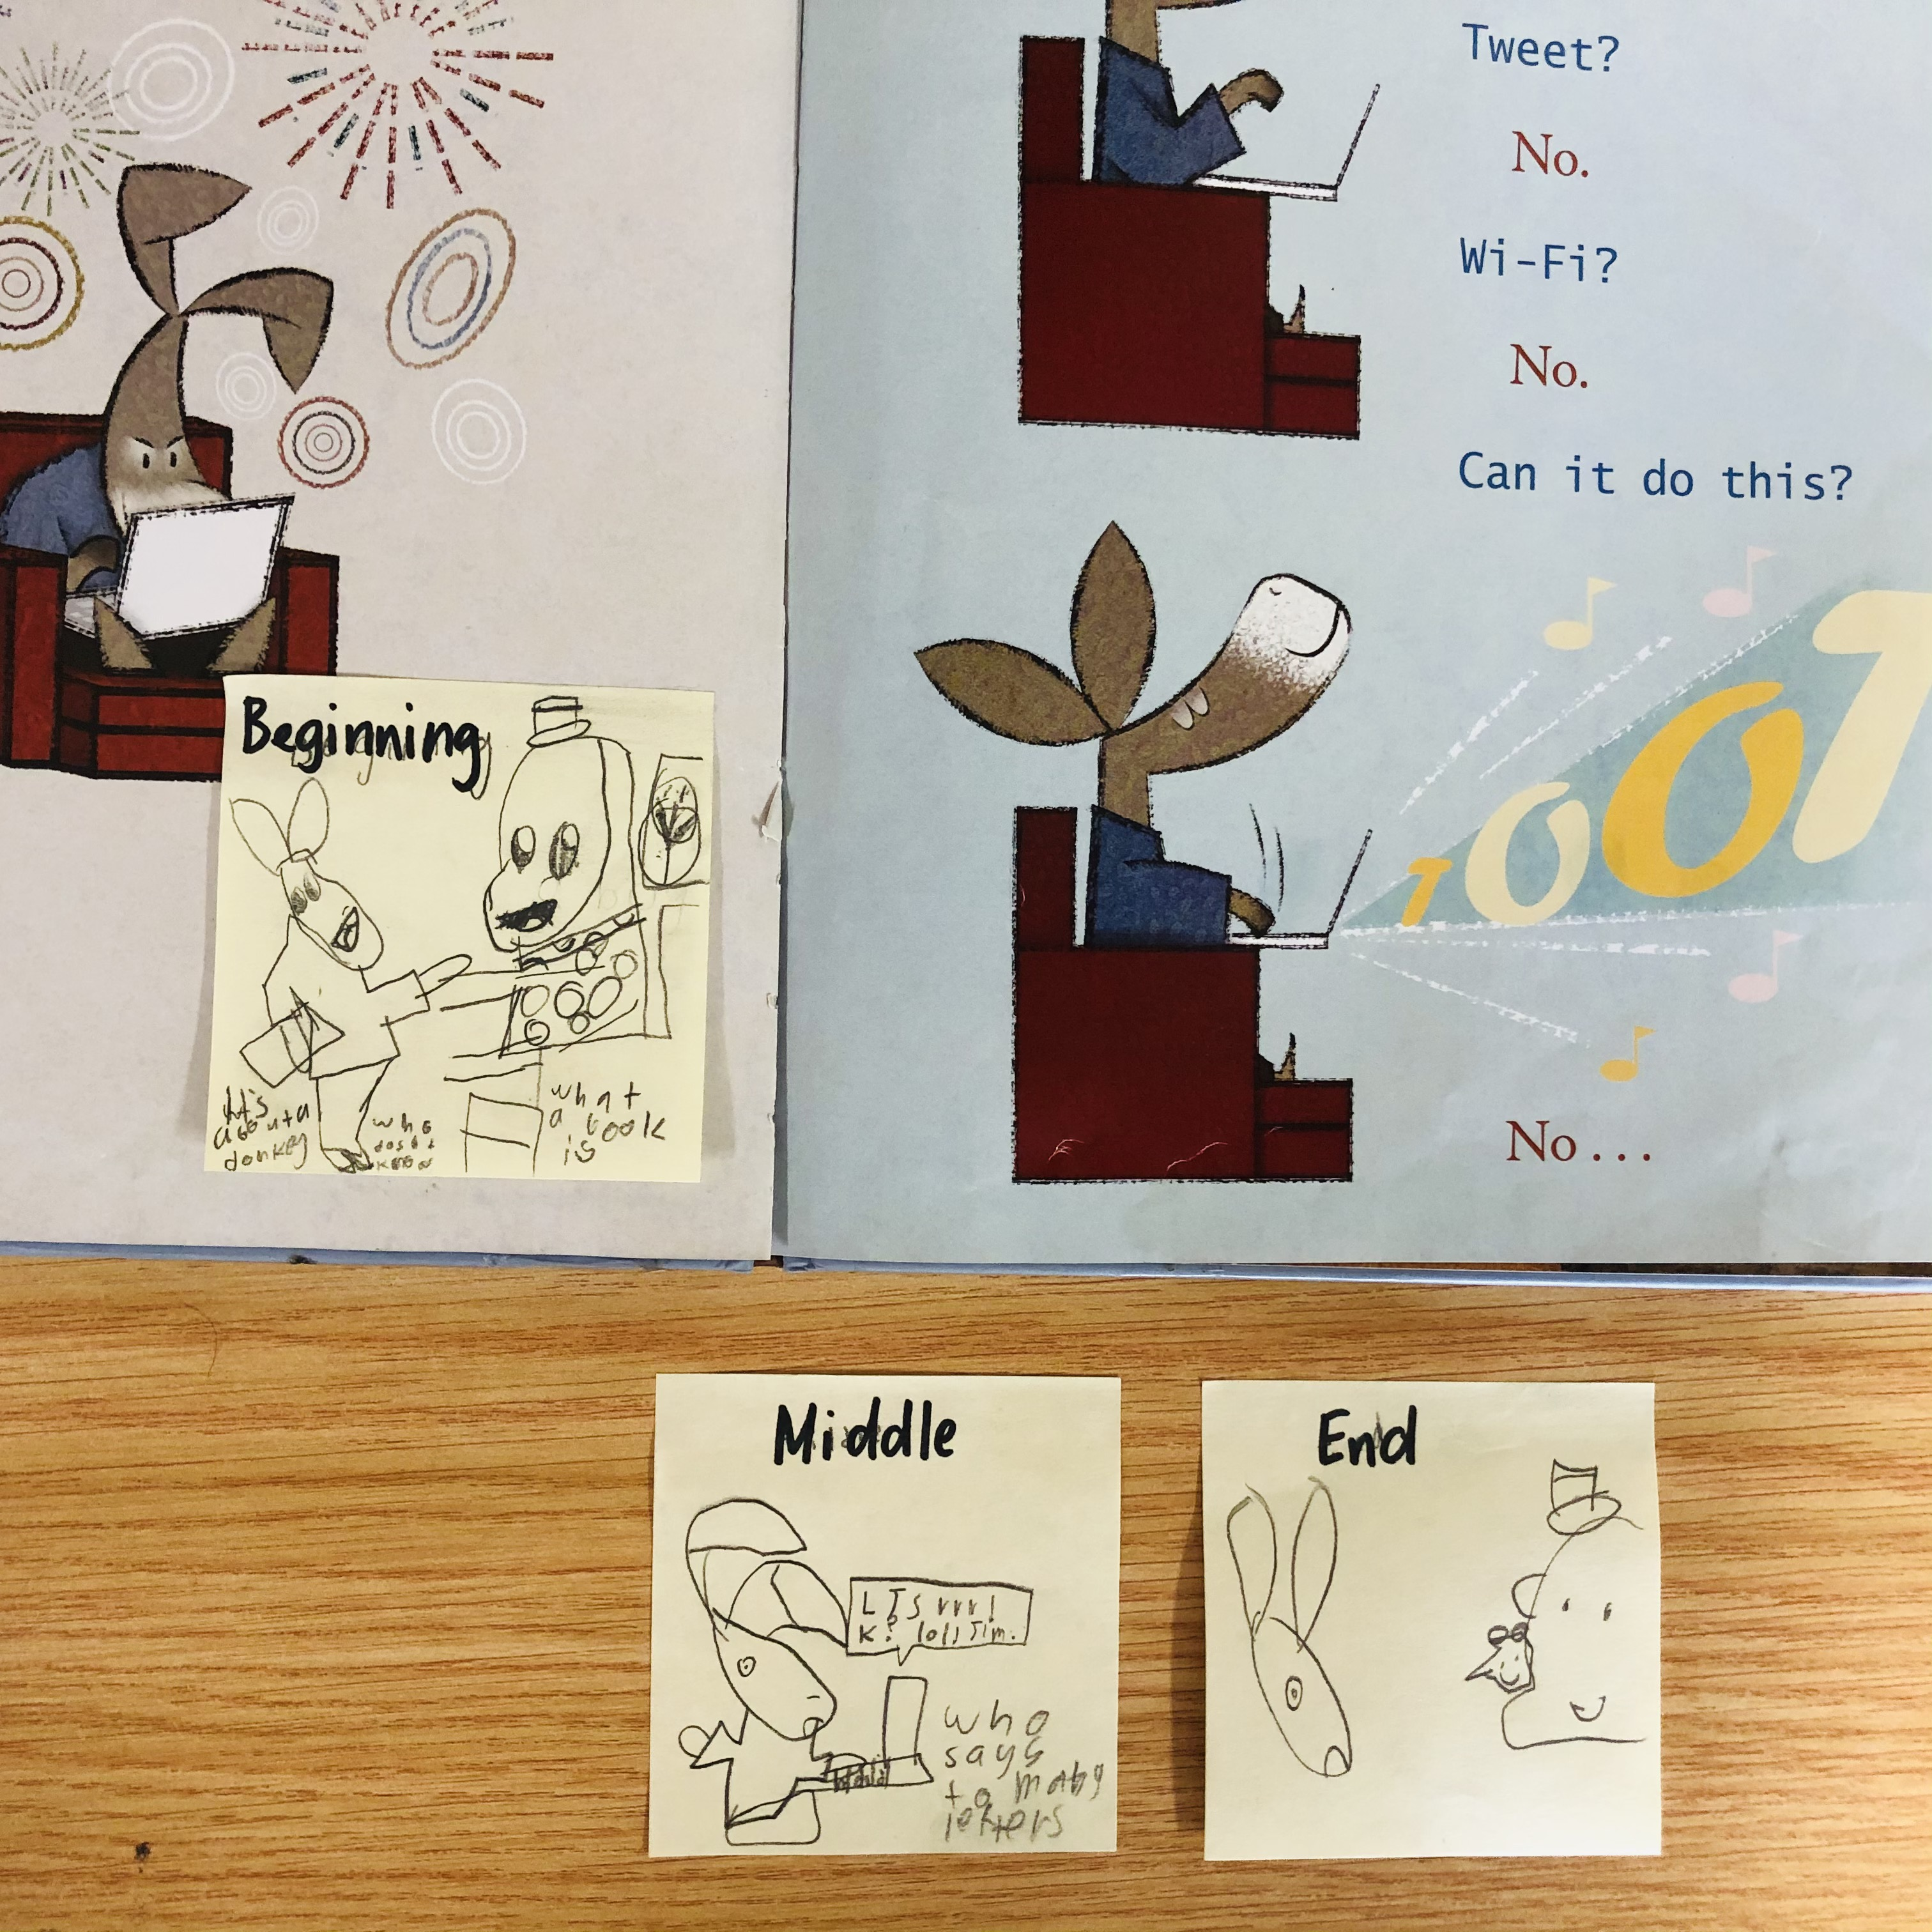 Students practicing skills in retelling, using a picture books, post-it notes and reflecting on the beginning, the middle and the end of the story.